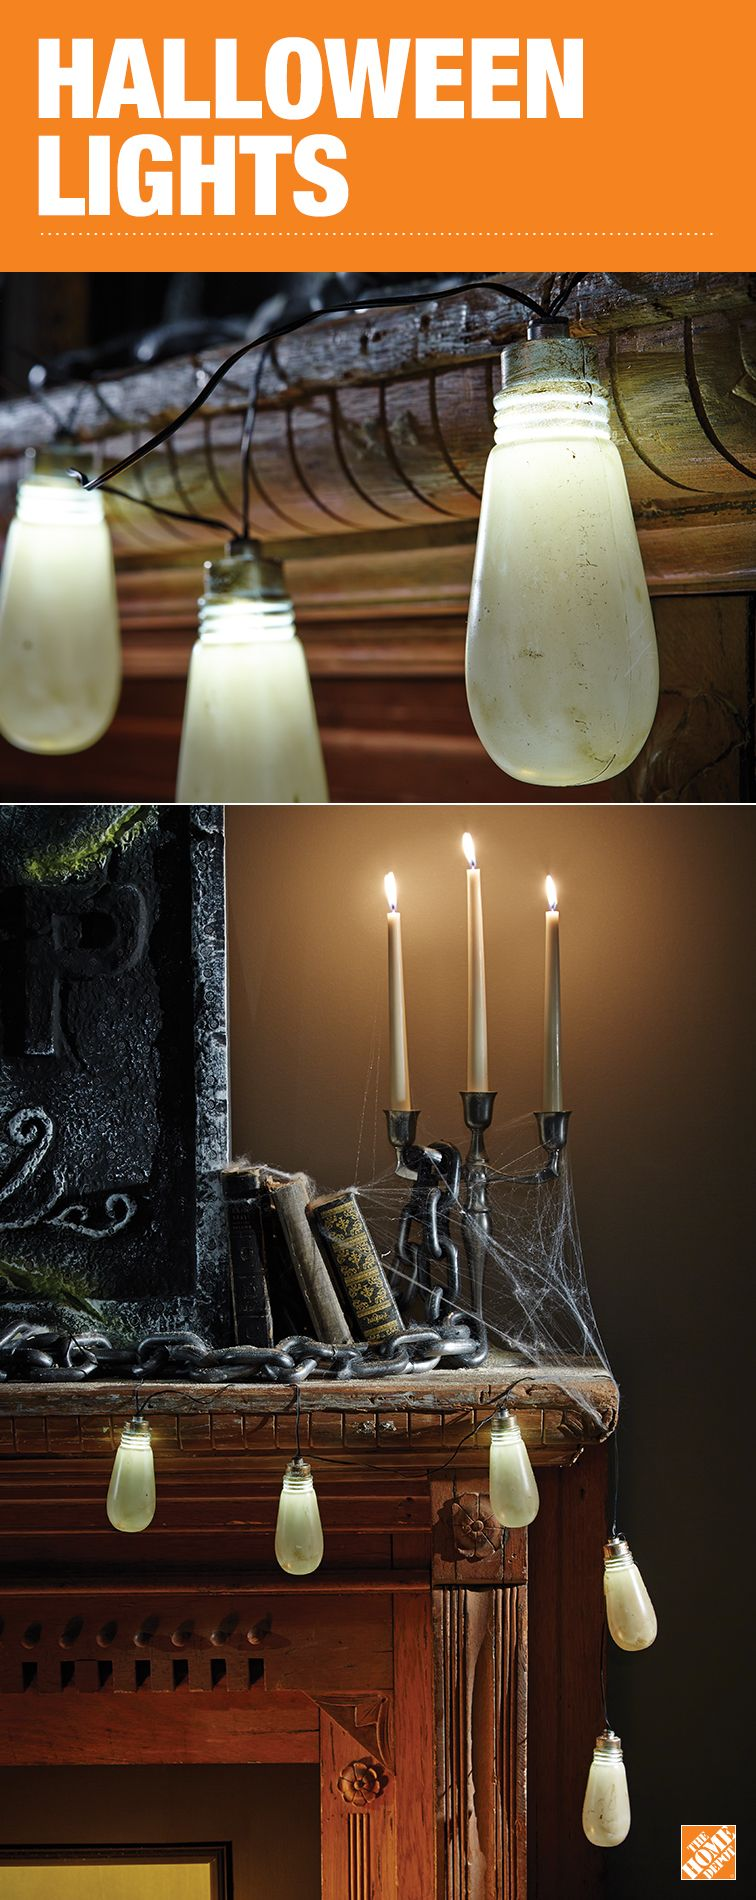 decorative lights arent just for christmas decorate your house or office halloween party